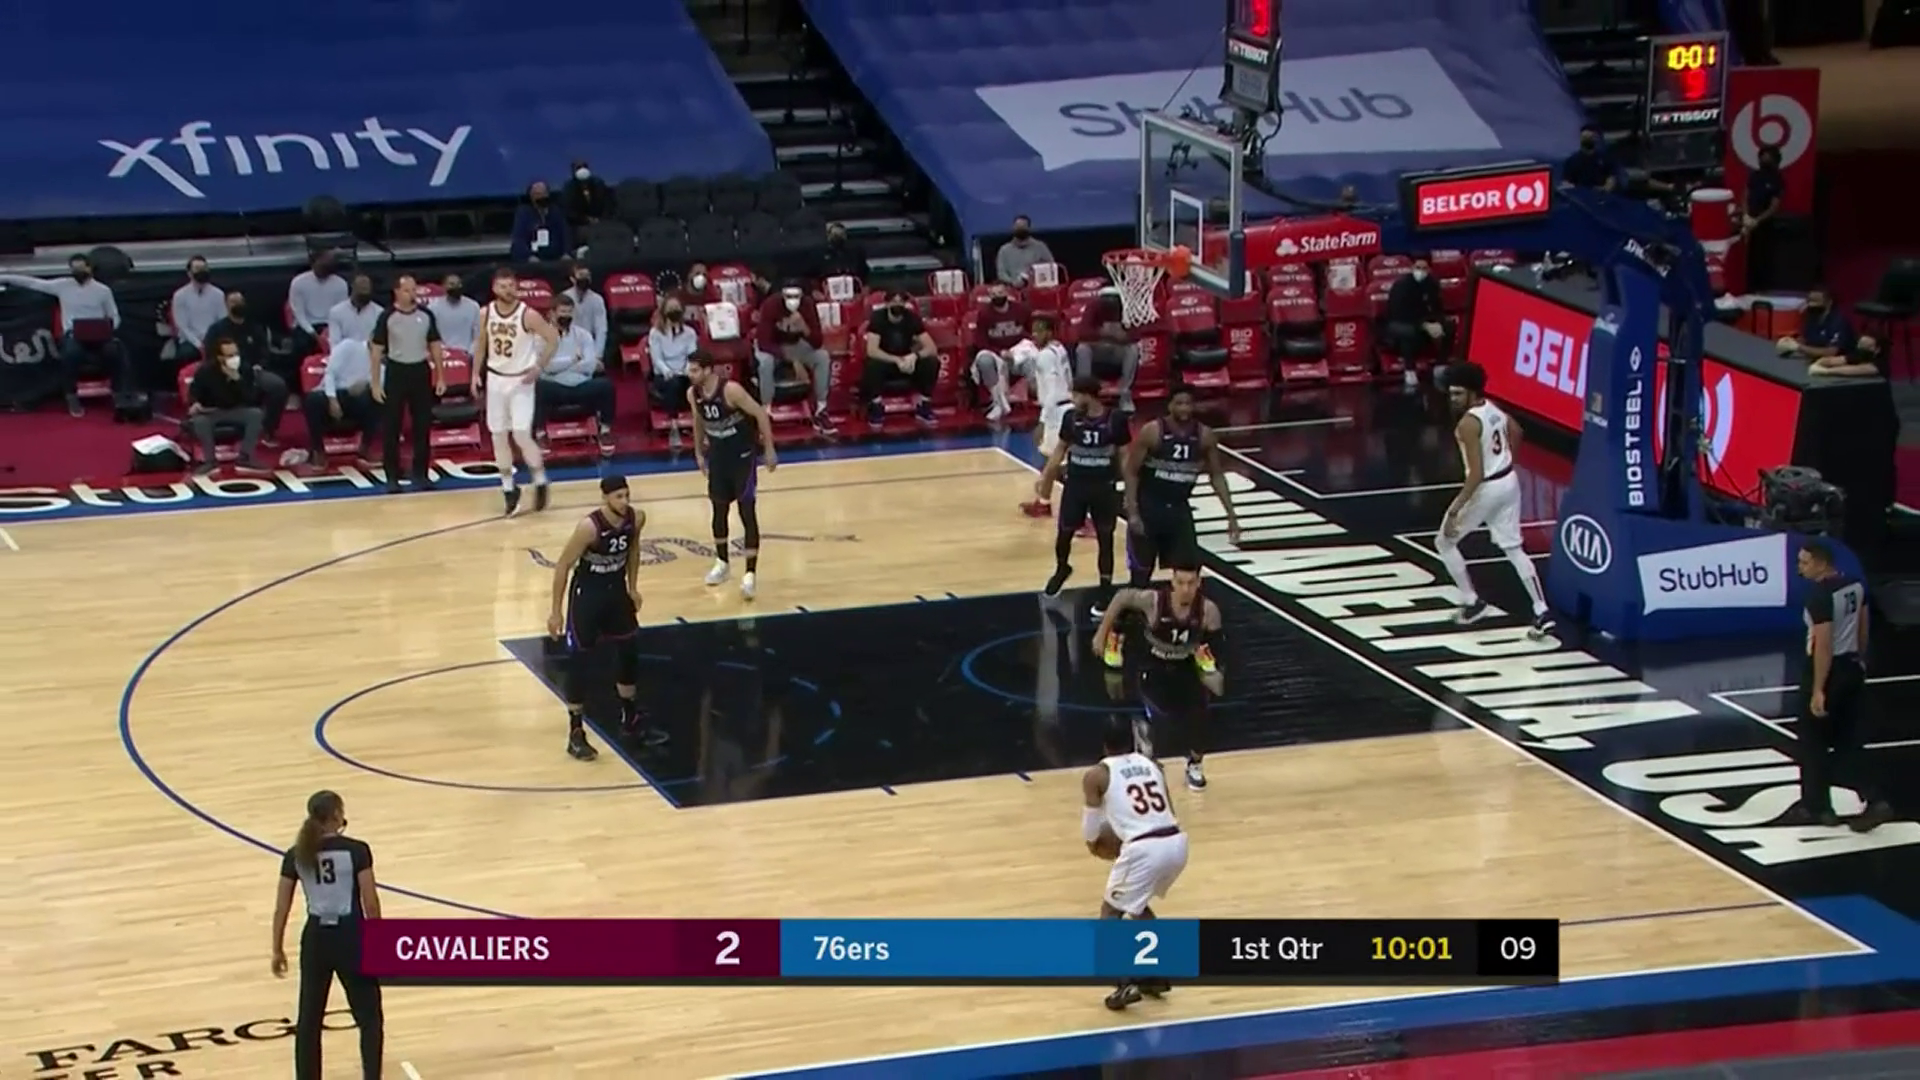 Allen Assists to Okoro for Three